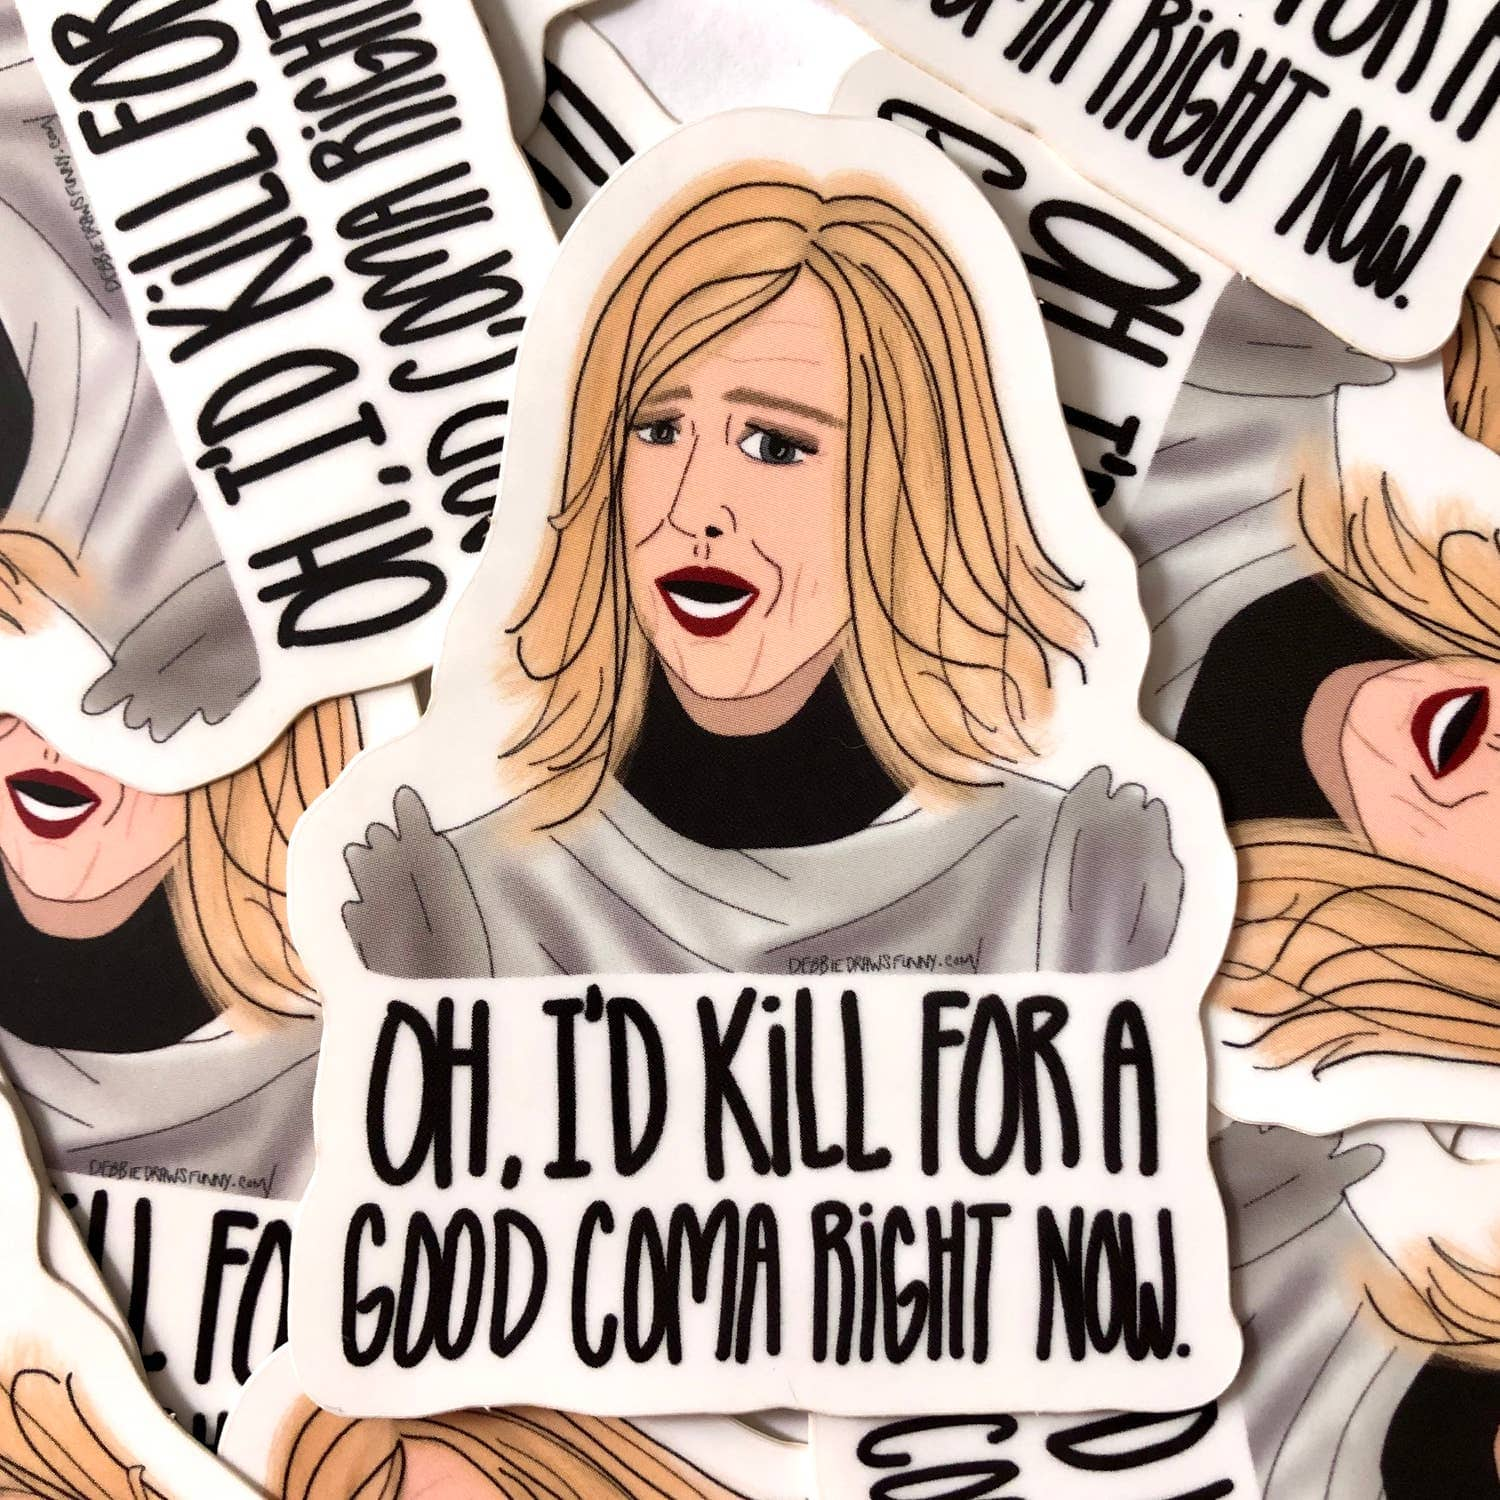 I'd Kill for a Good Coma Right Now Sticker